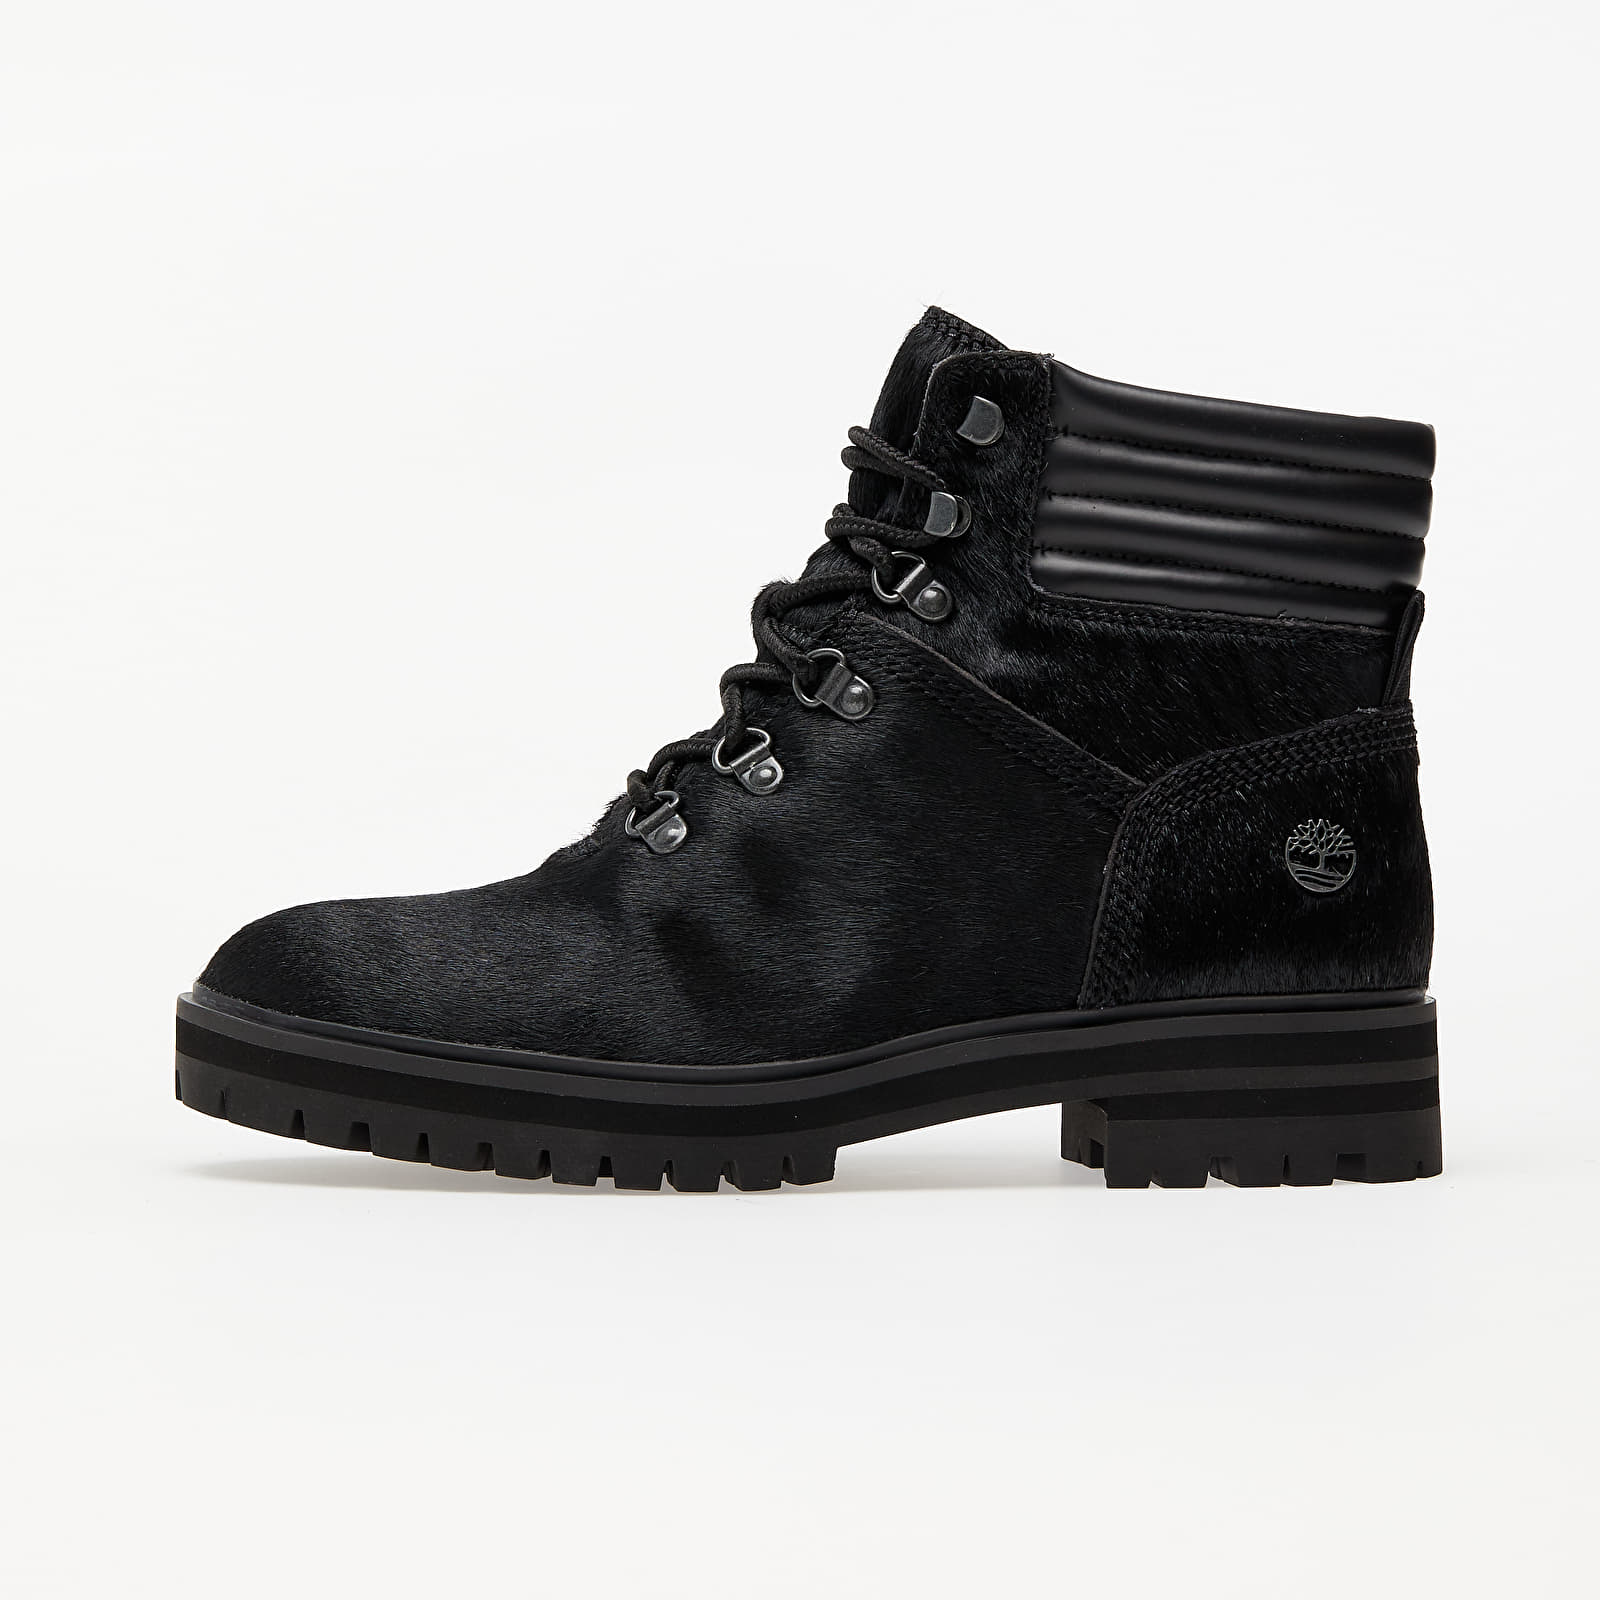 Timberland London Sq Black TB0A2GD30011